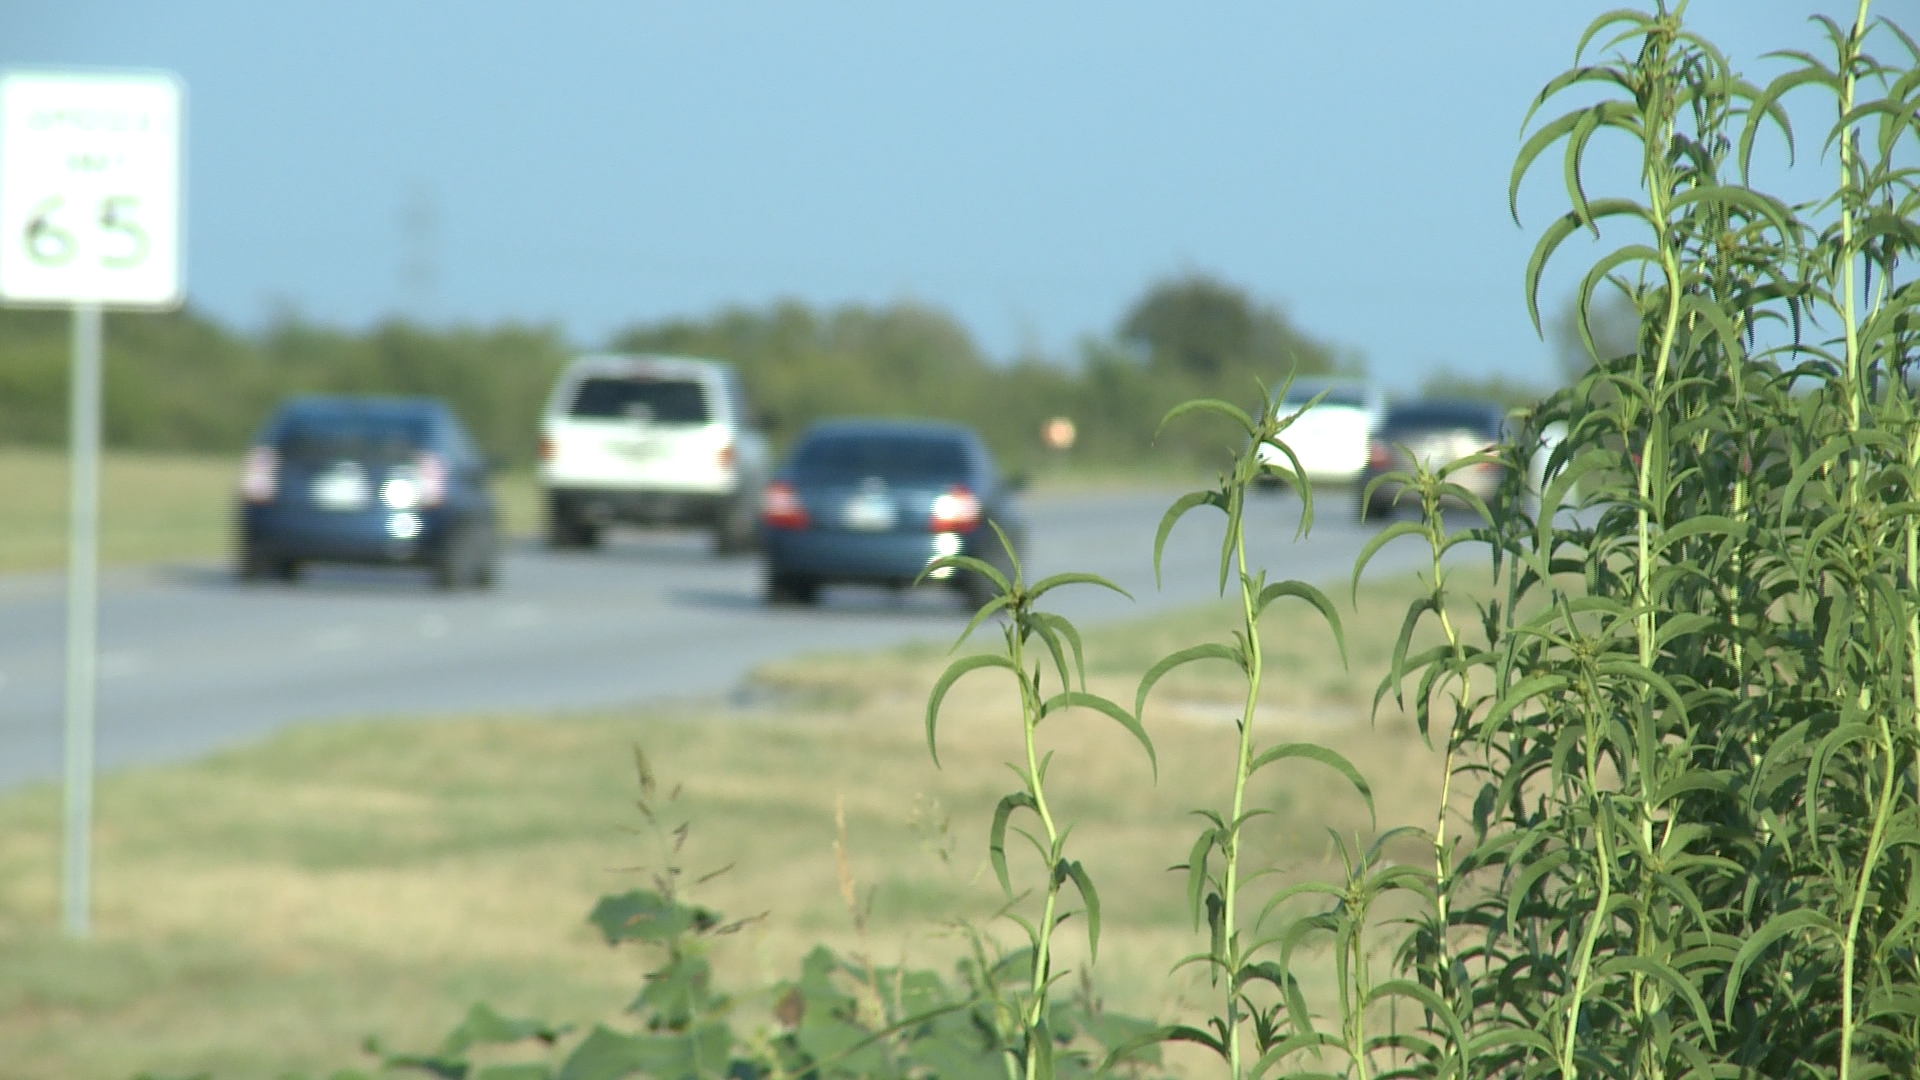 Cars drive along Parmer Lane in between in the urban-rural interface._346971